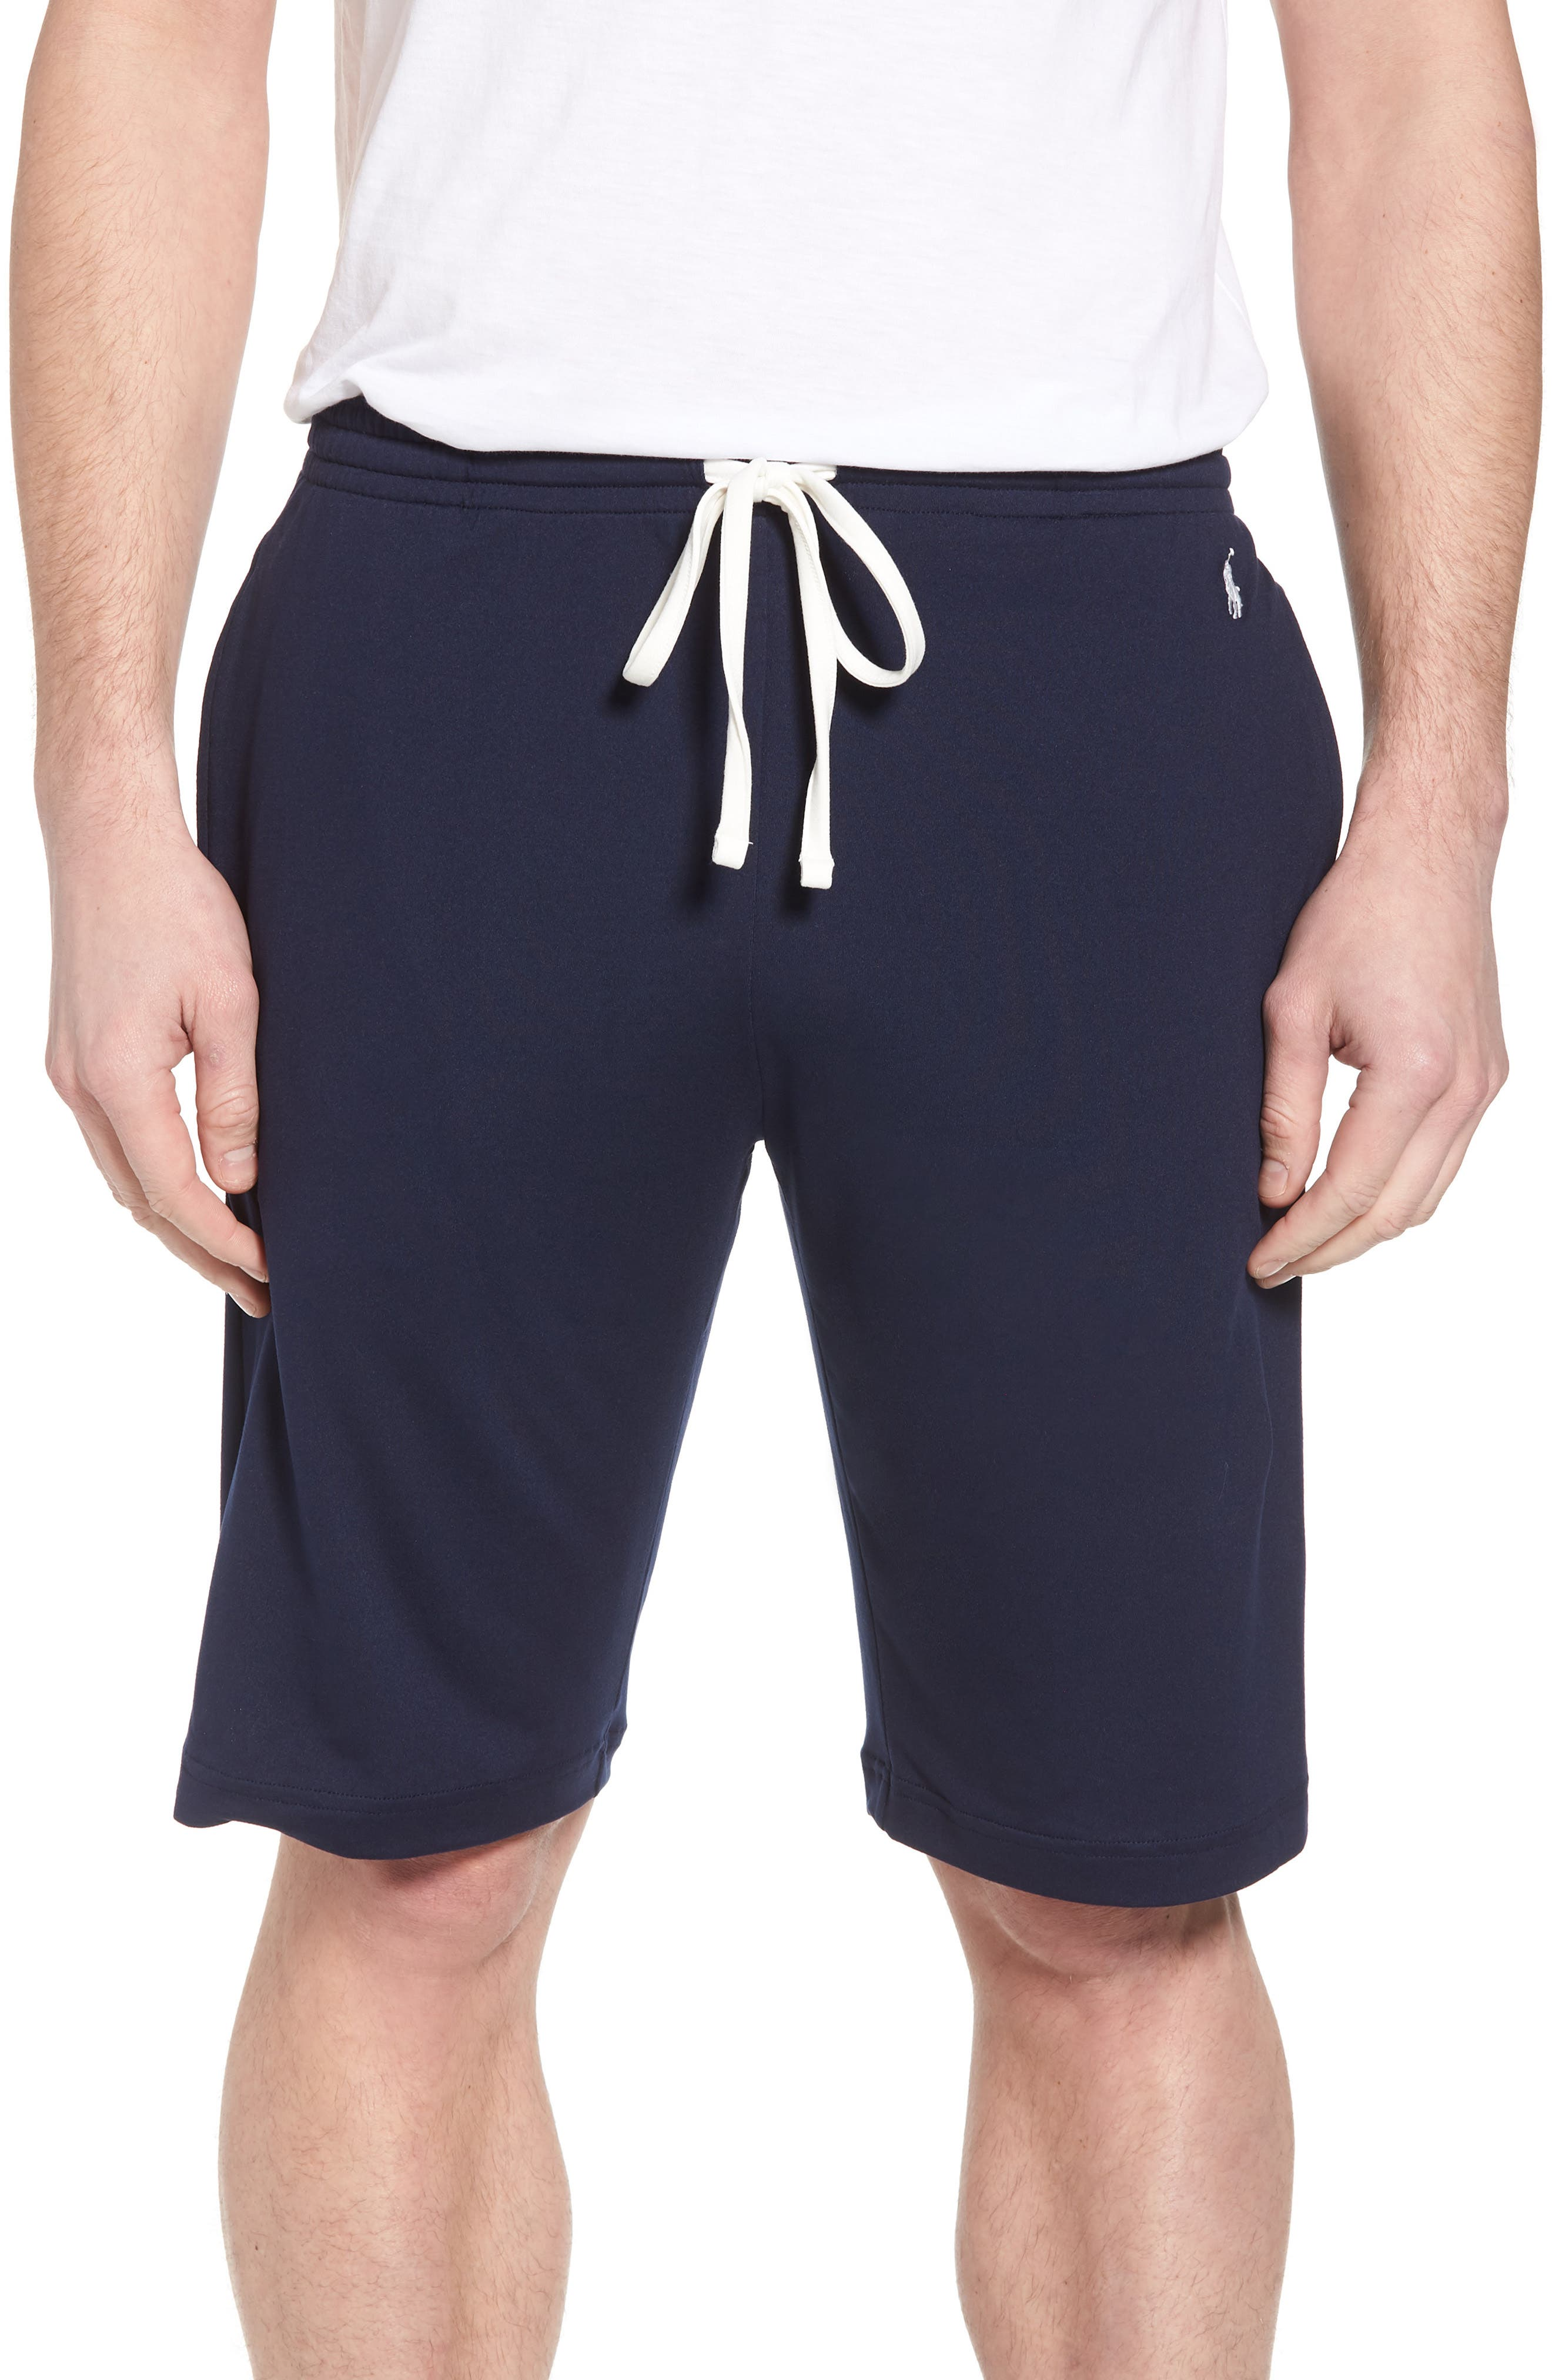 Alternate Image 1 Selected - Polo Ralph Lauren Therma Lounge Shorts